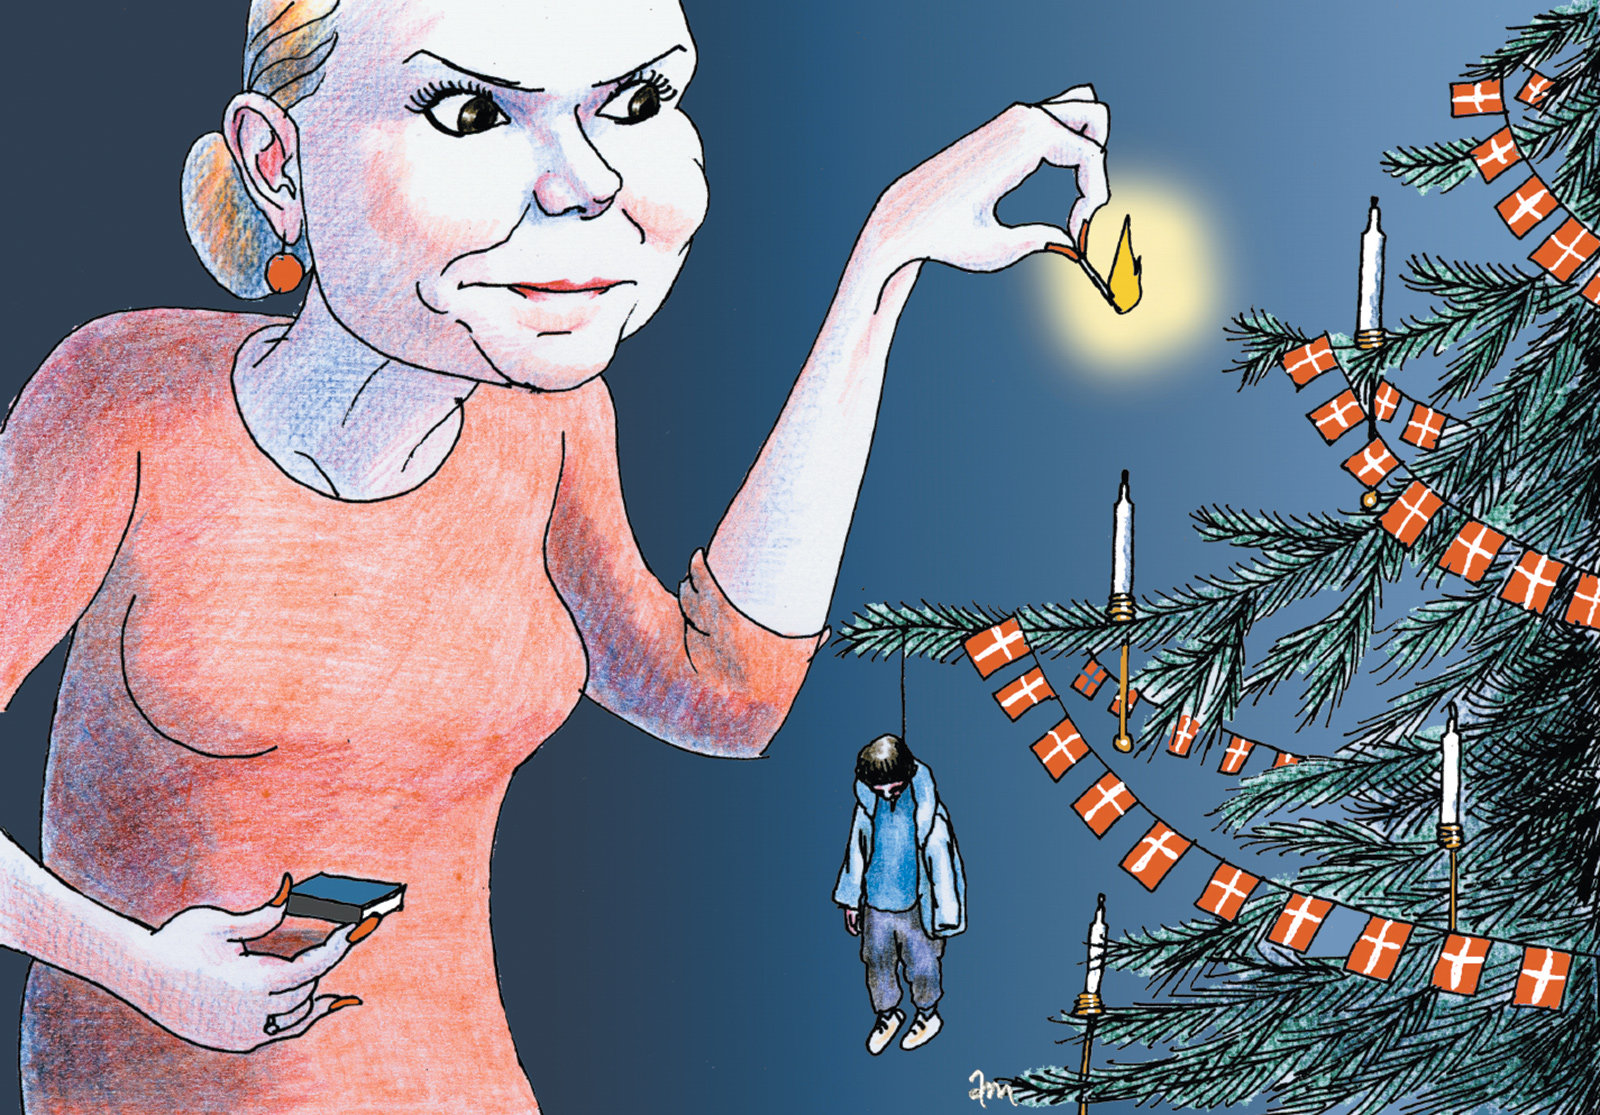 A cartoon published by the Danish newspaper Politiken showing Inger Støjberg, the country's integration minister, lighting candles on a Christmas tree that has a dead asylum-­seeker as an ornament, December 2015 (Anne-Marie Steen Petersen)